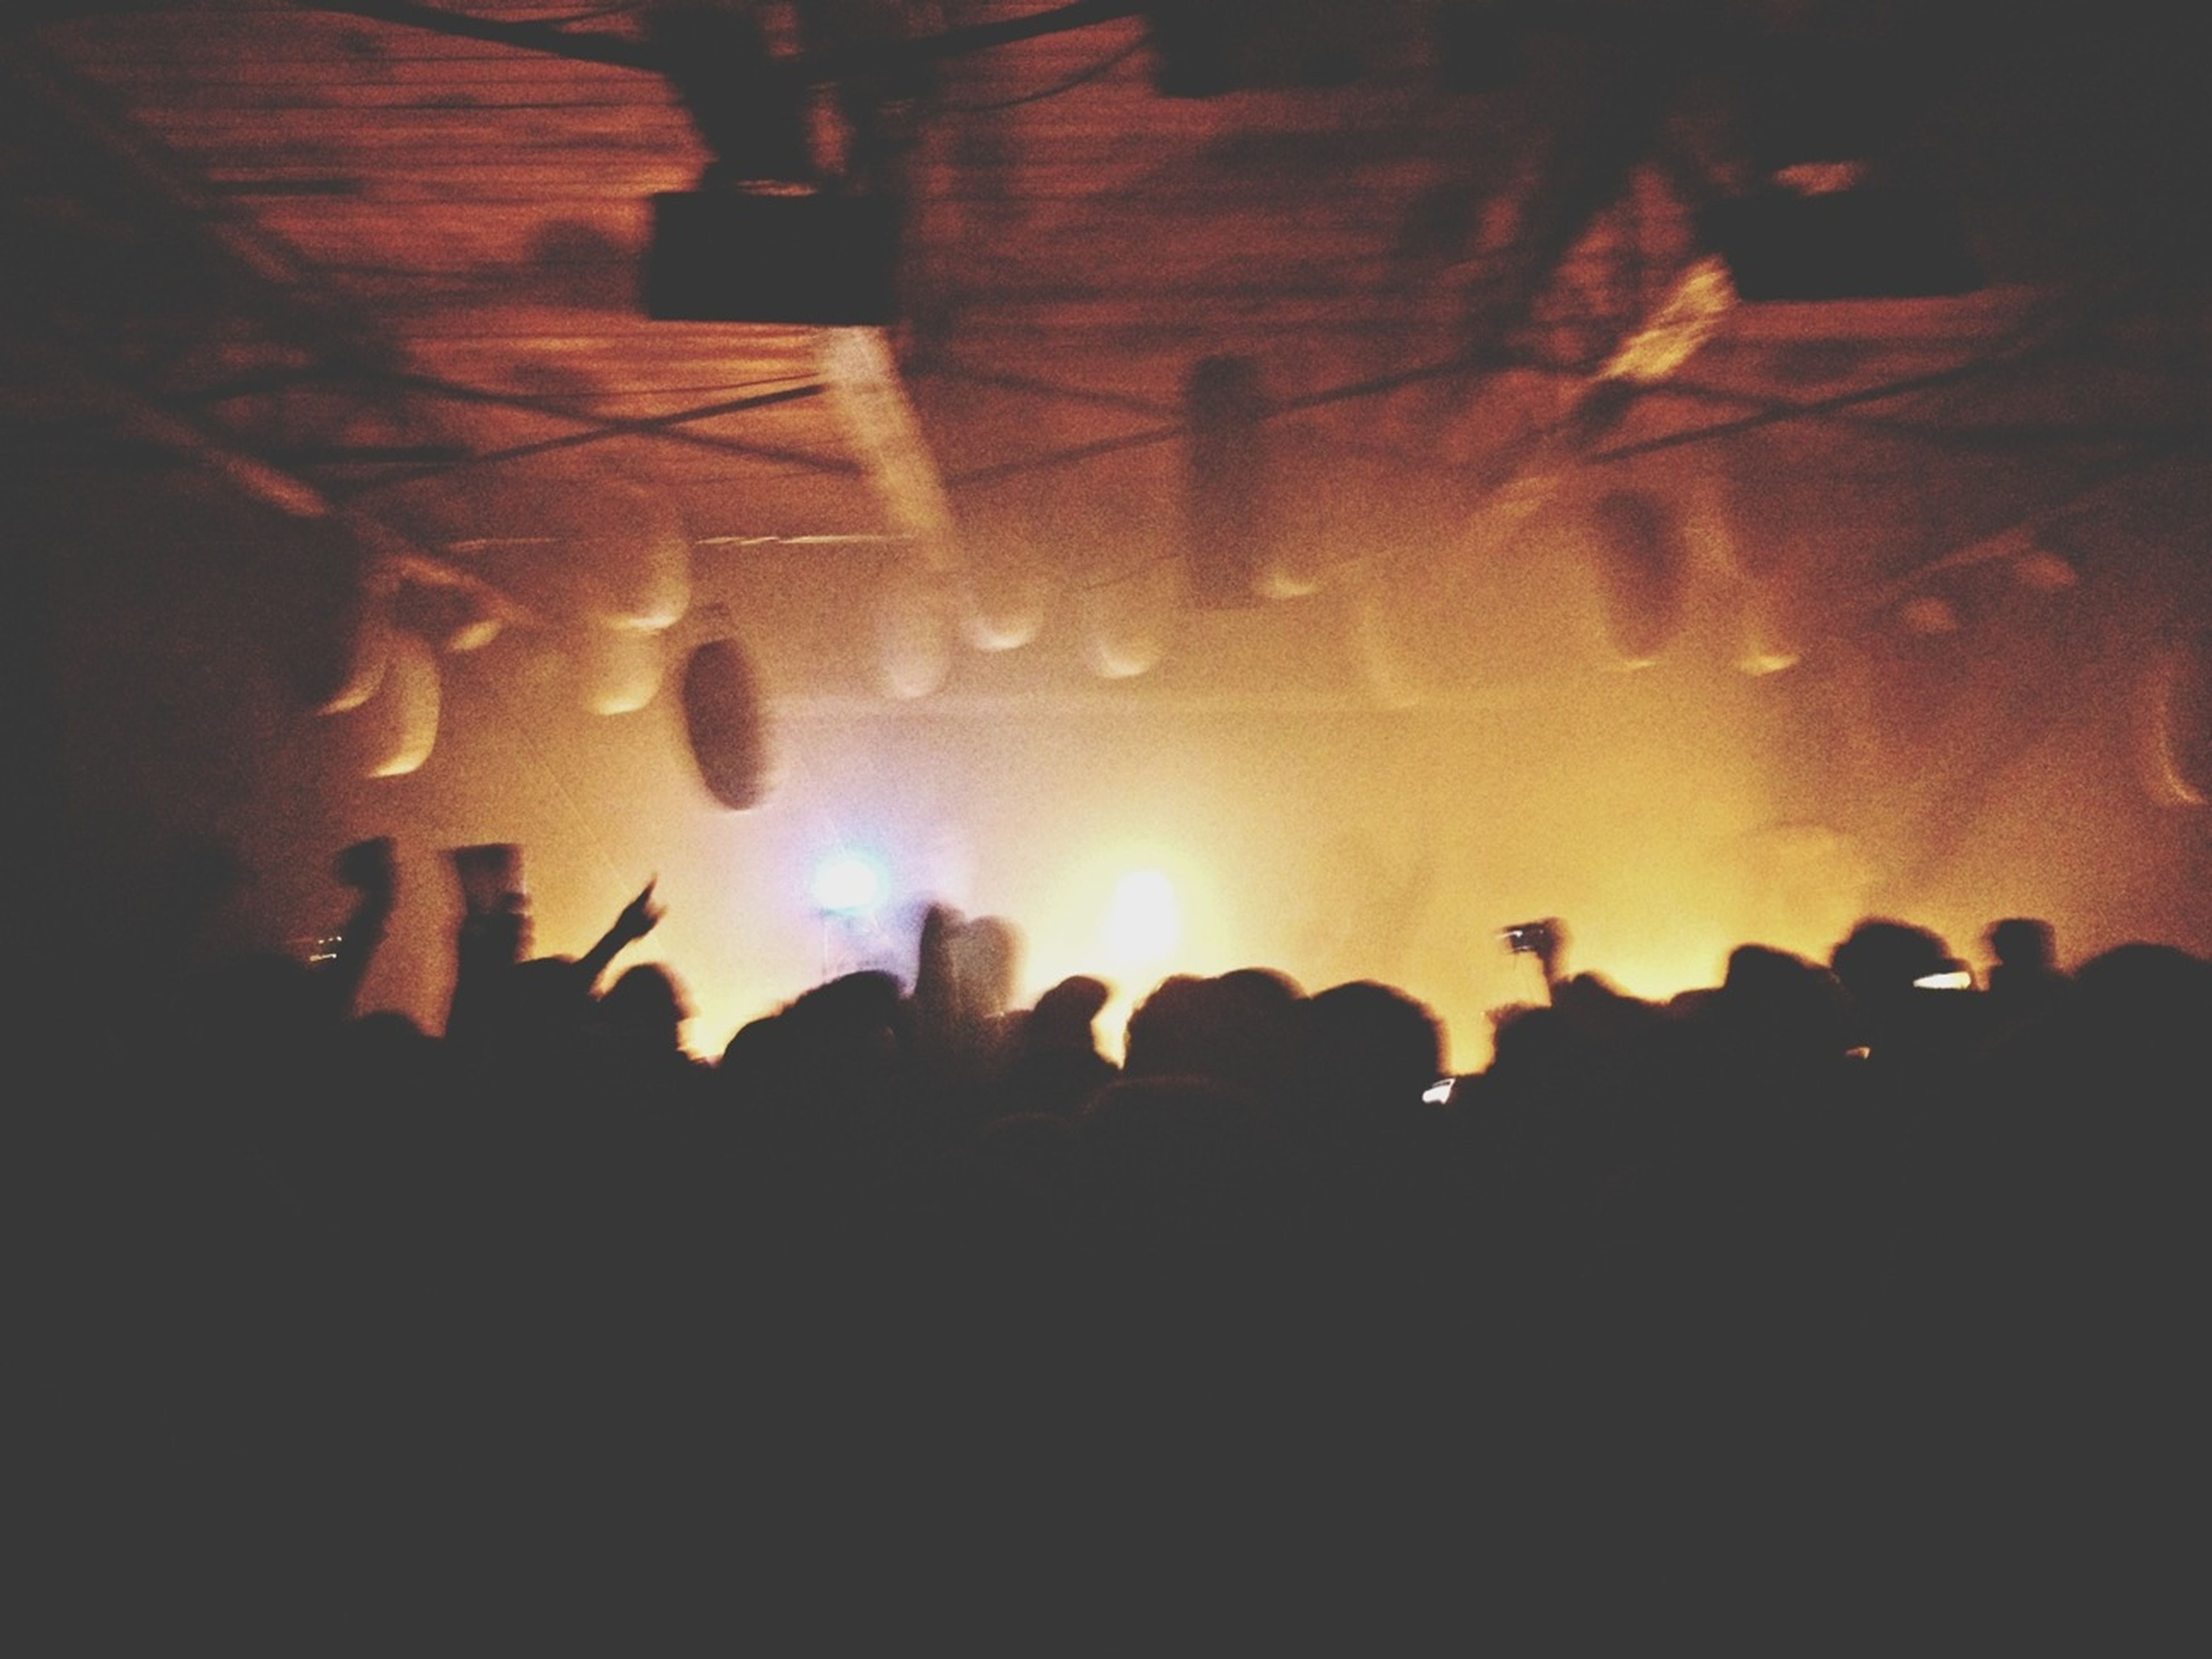 large group of people, illuminated, night, silhouette, crowd, men, lifestyles, leisure activity, arts culture and entertainment, light - natural phenomenon, enjoyment, celebration, event, indoors, person, nightlife, performance, fun